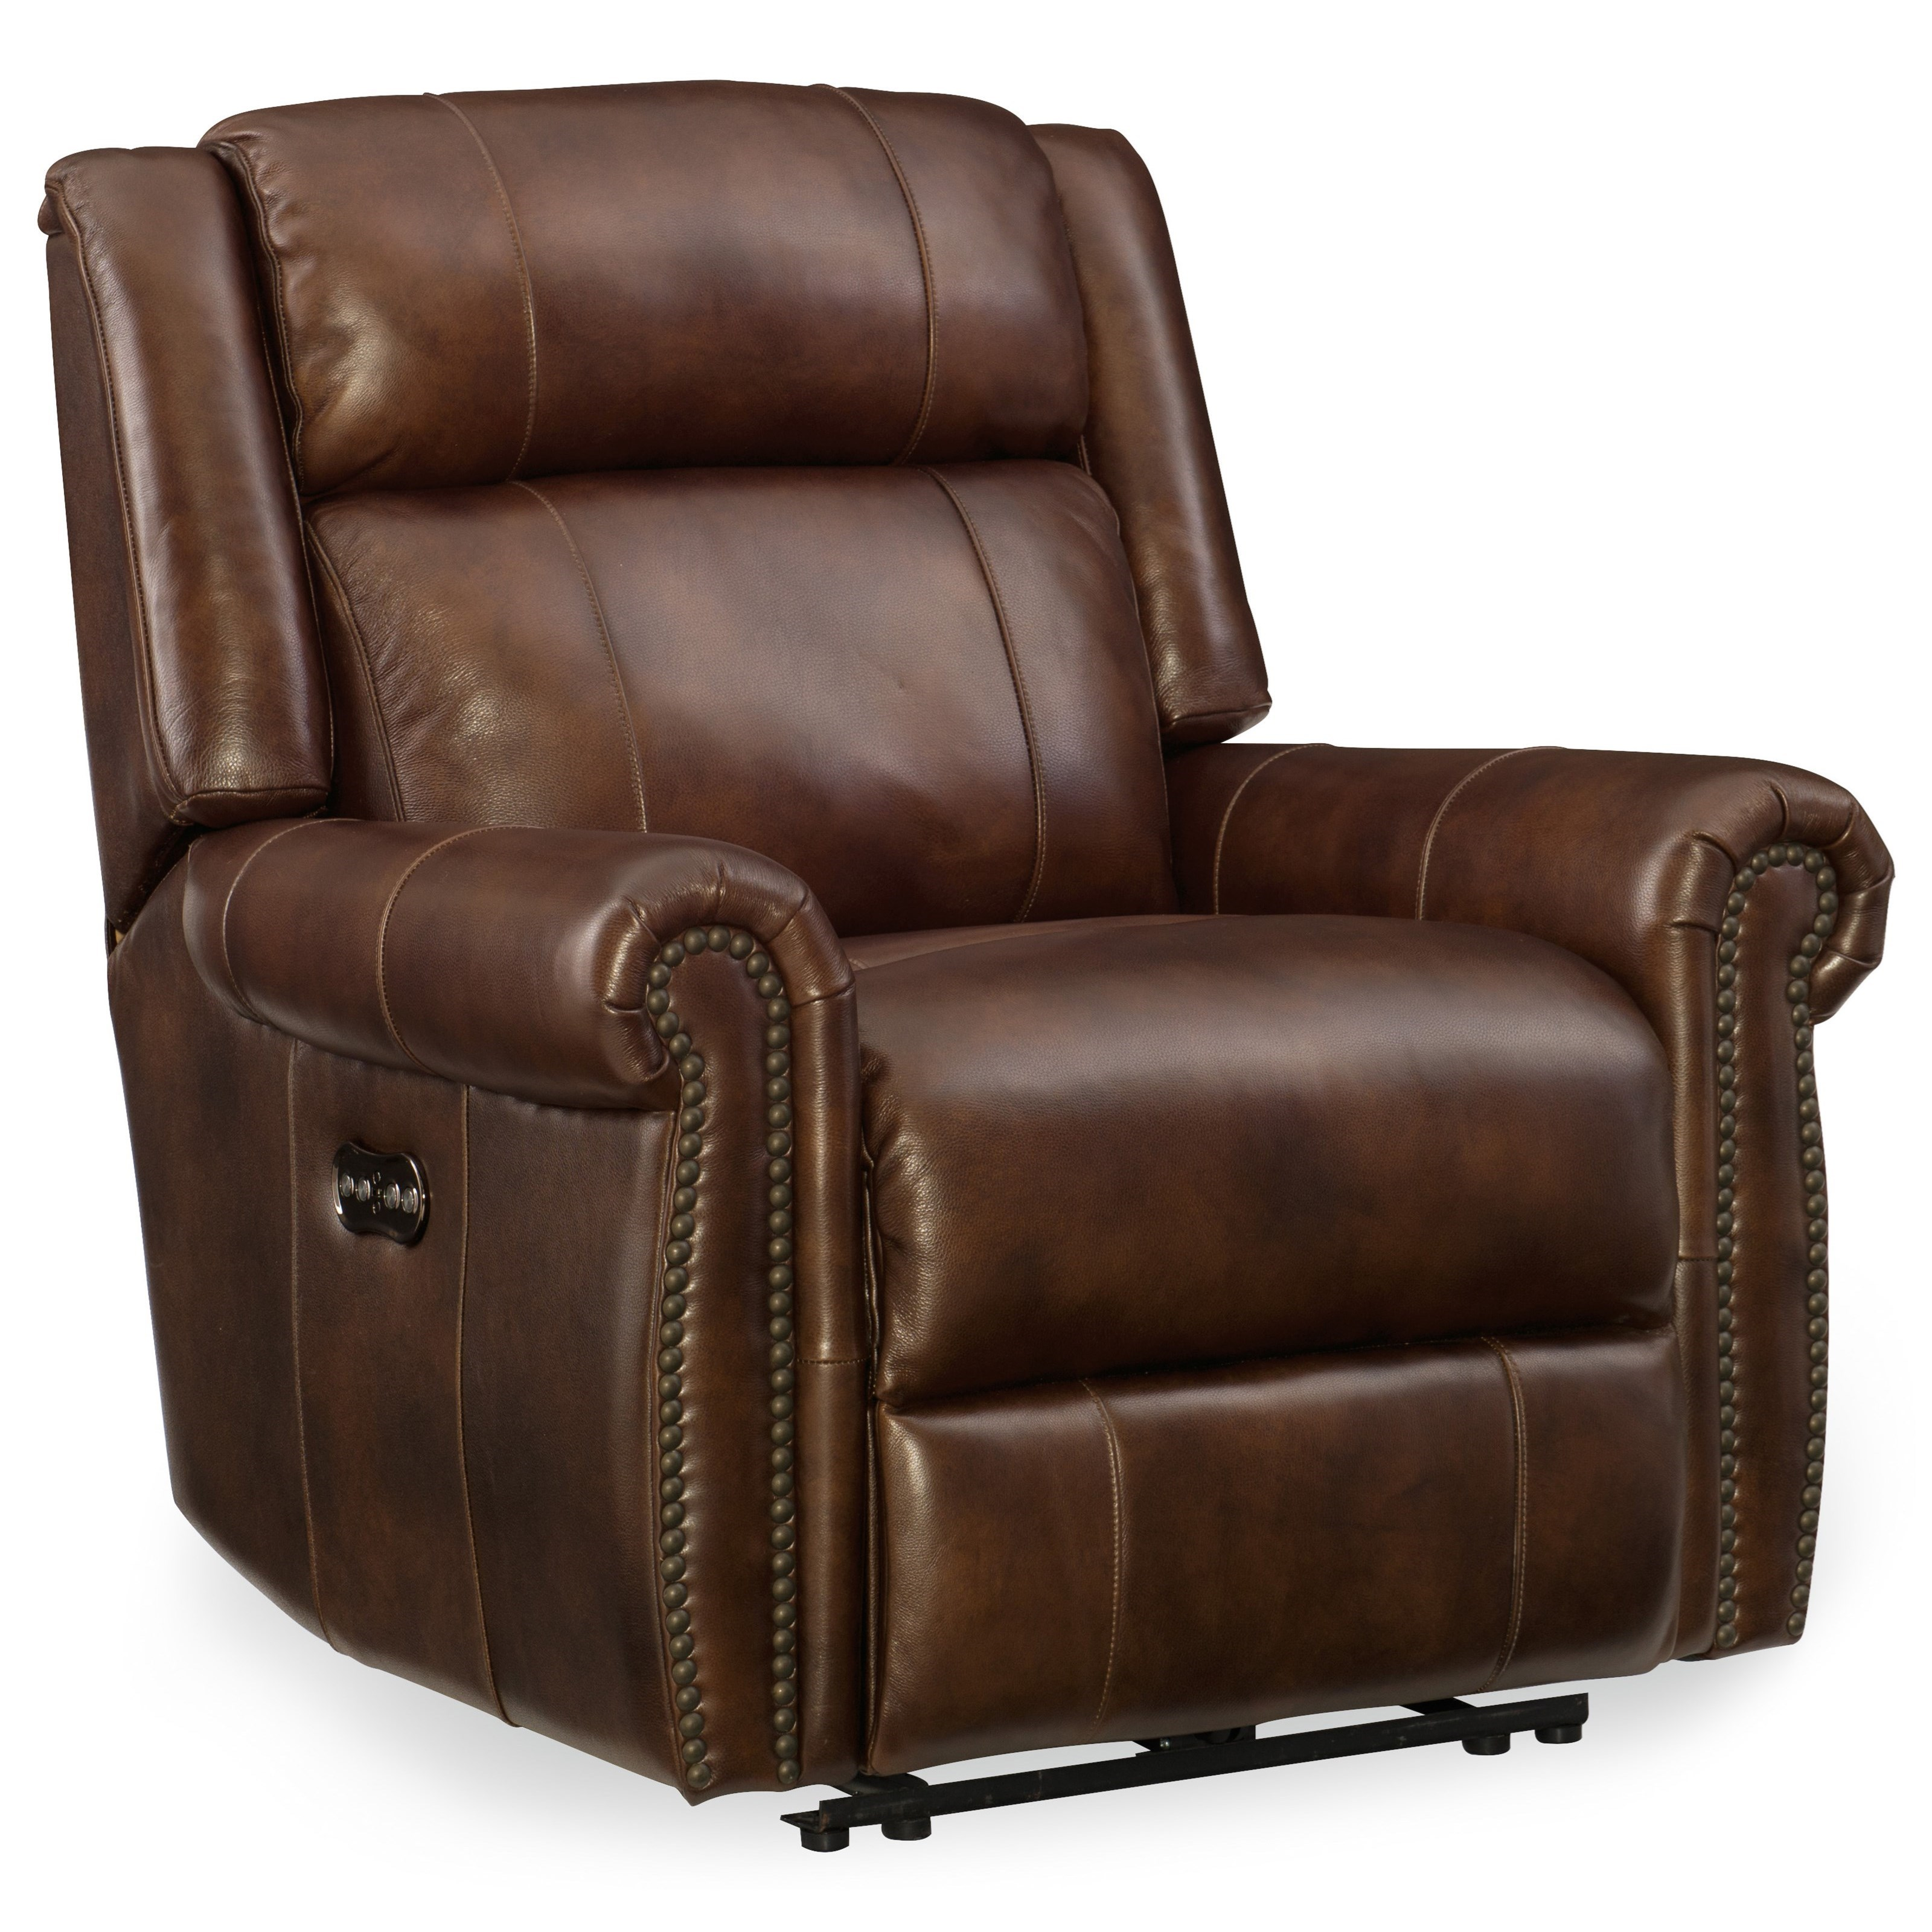 massage chair headrest patio rocking chairs canada hooker furniture esme power recliner with